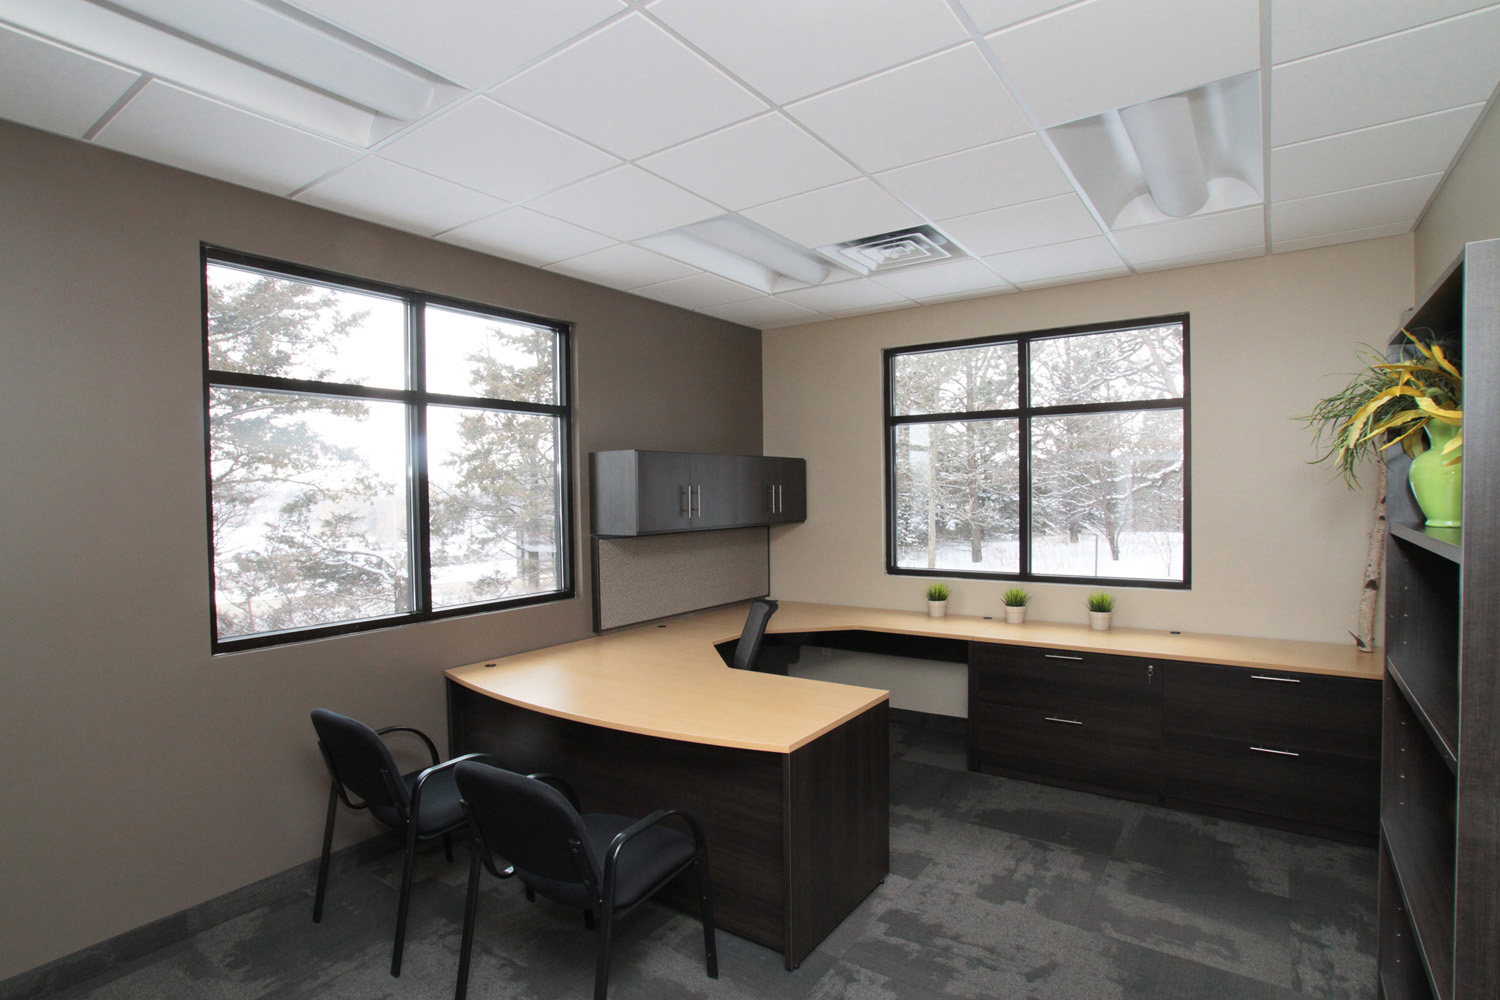 Office space design mankato new used office furnishings mankato - Design office room ...